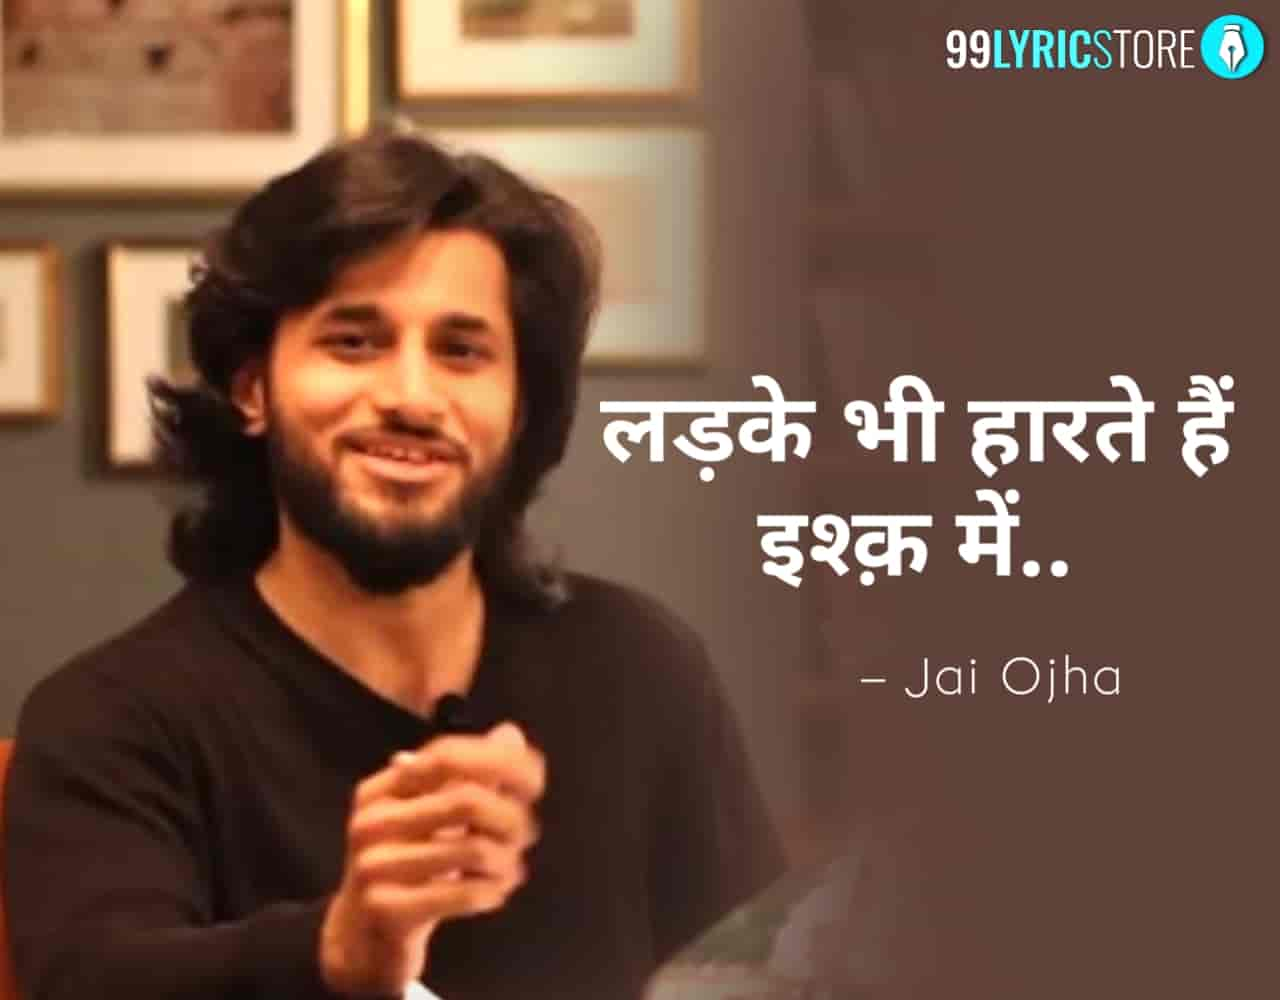 This Beautiful Poem 'Ladke Bhi Haarte Hai Ishq Mein'  which is written and performed by Jai Ojha.